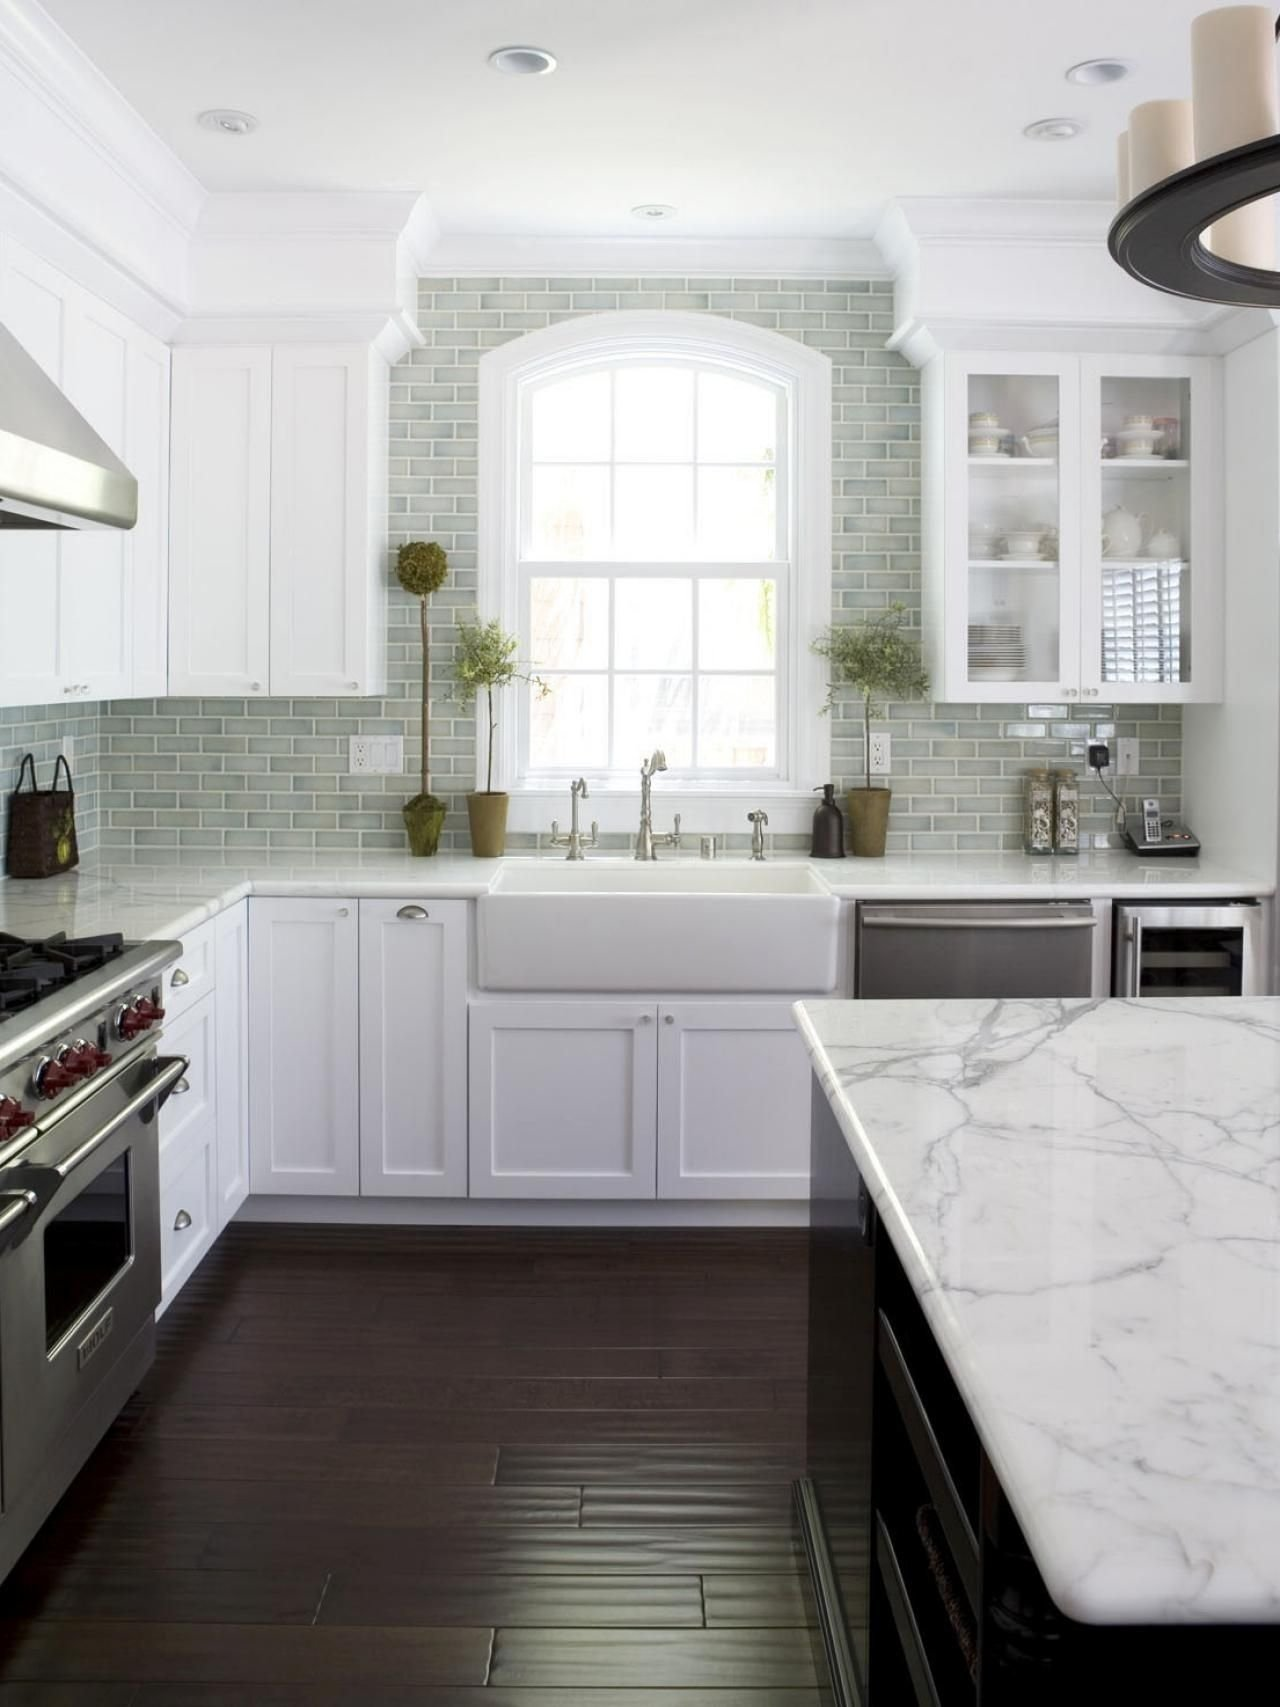 10 Gorgeous Kitchen Ideas With White Cabinets our 55 favorite white kitchens hgtv kitchens and calacatta marble 2020